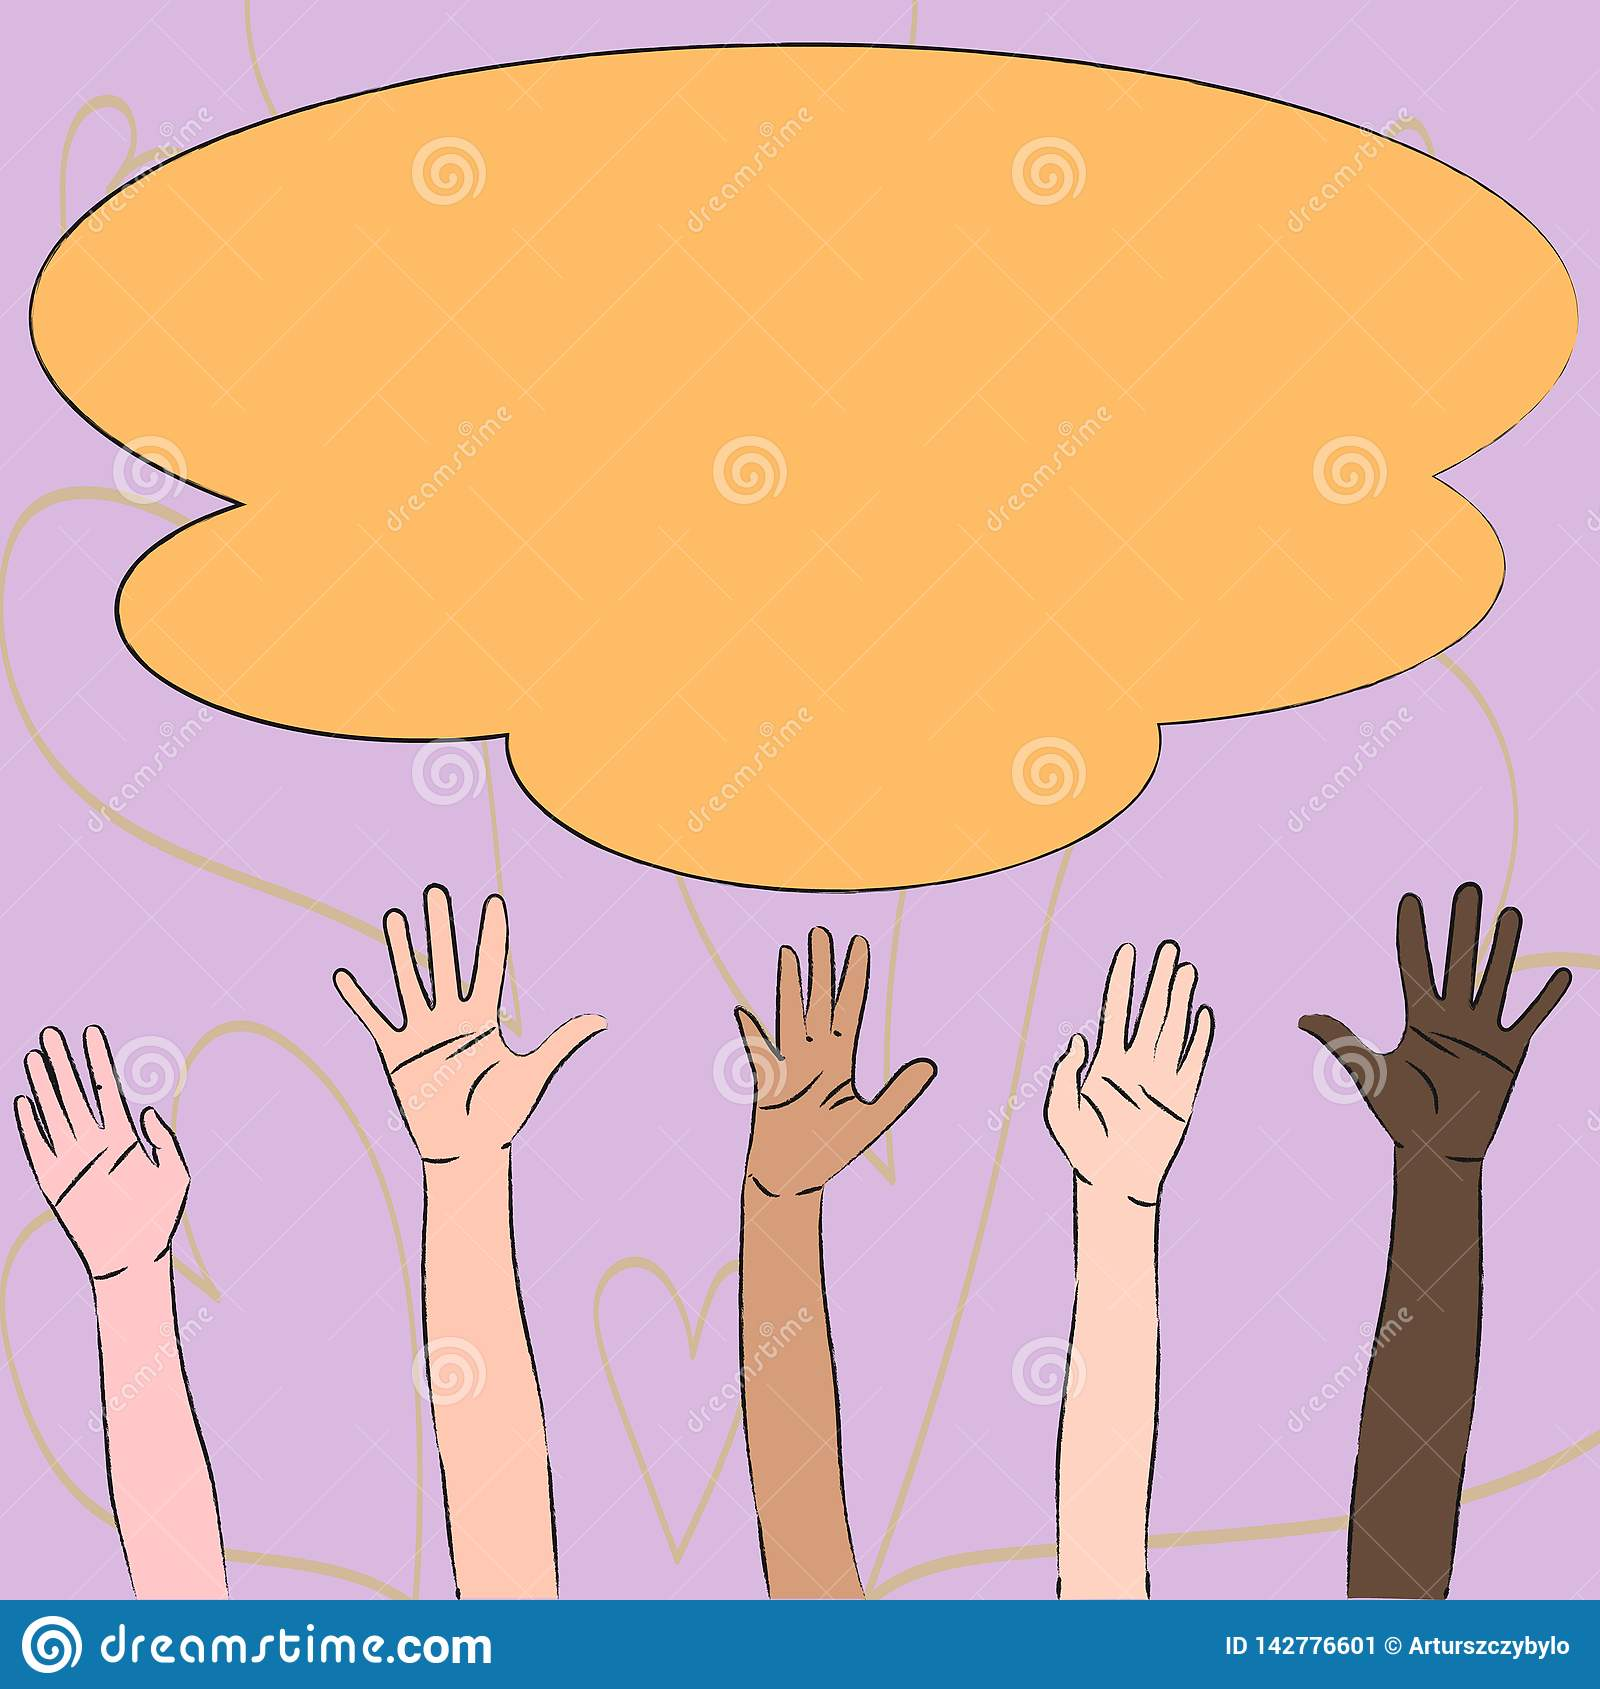 Illustration of Multiracial Diversity Hands Raising Up Reaching for Colorful Fluffy Big Cloud. Creative Background Idea